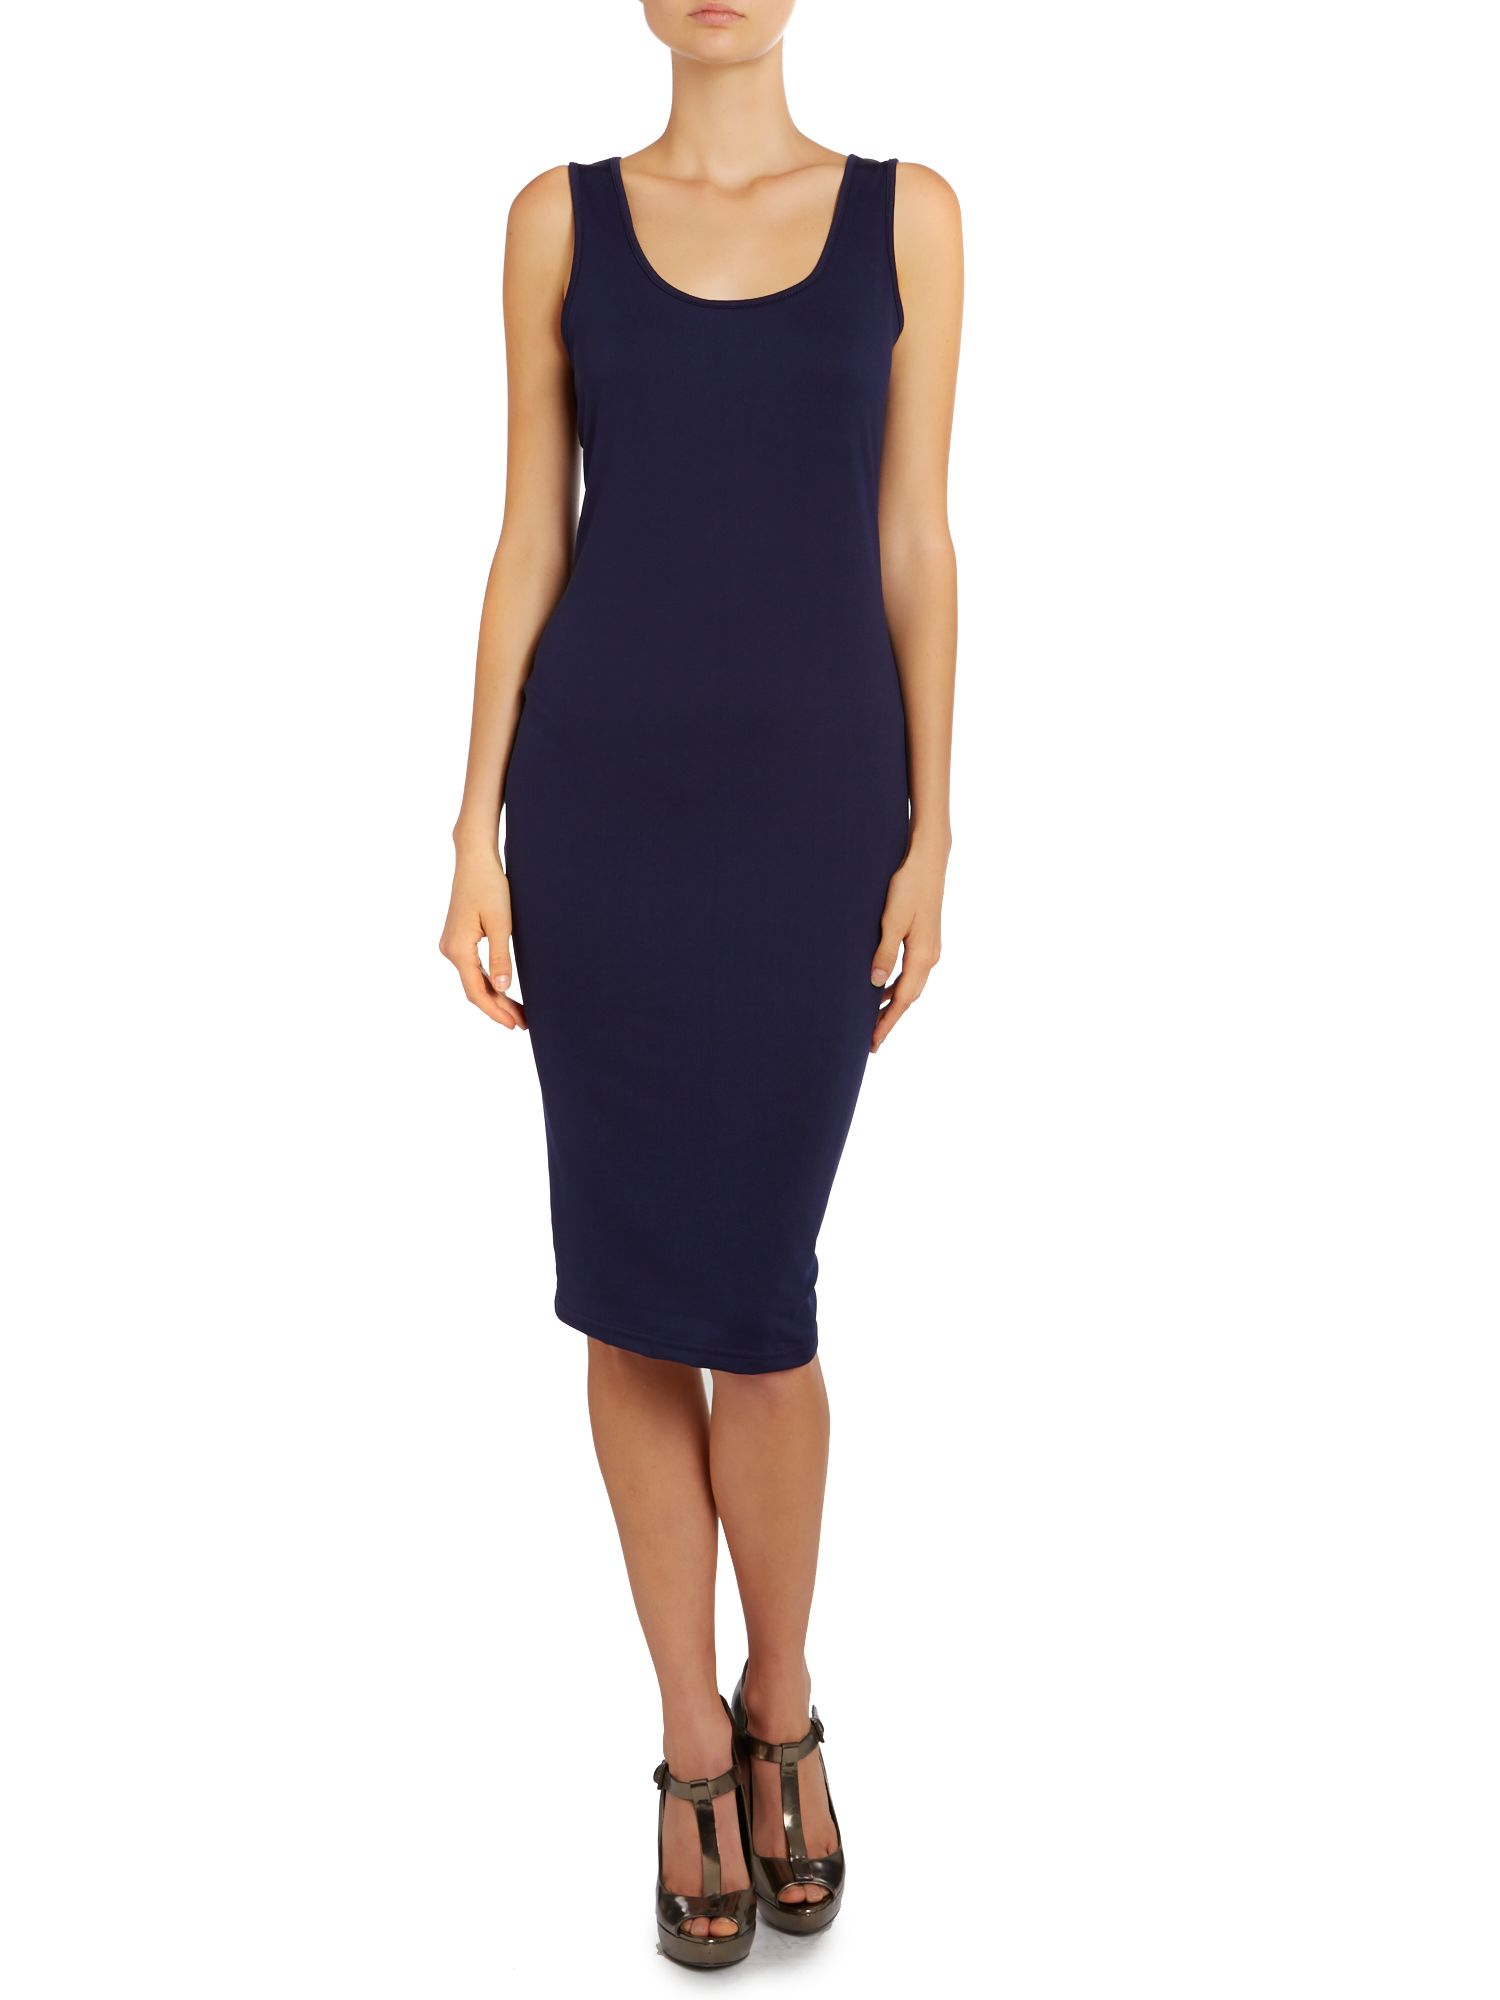 Bodycon sleeveless midi dress